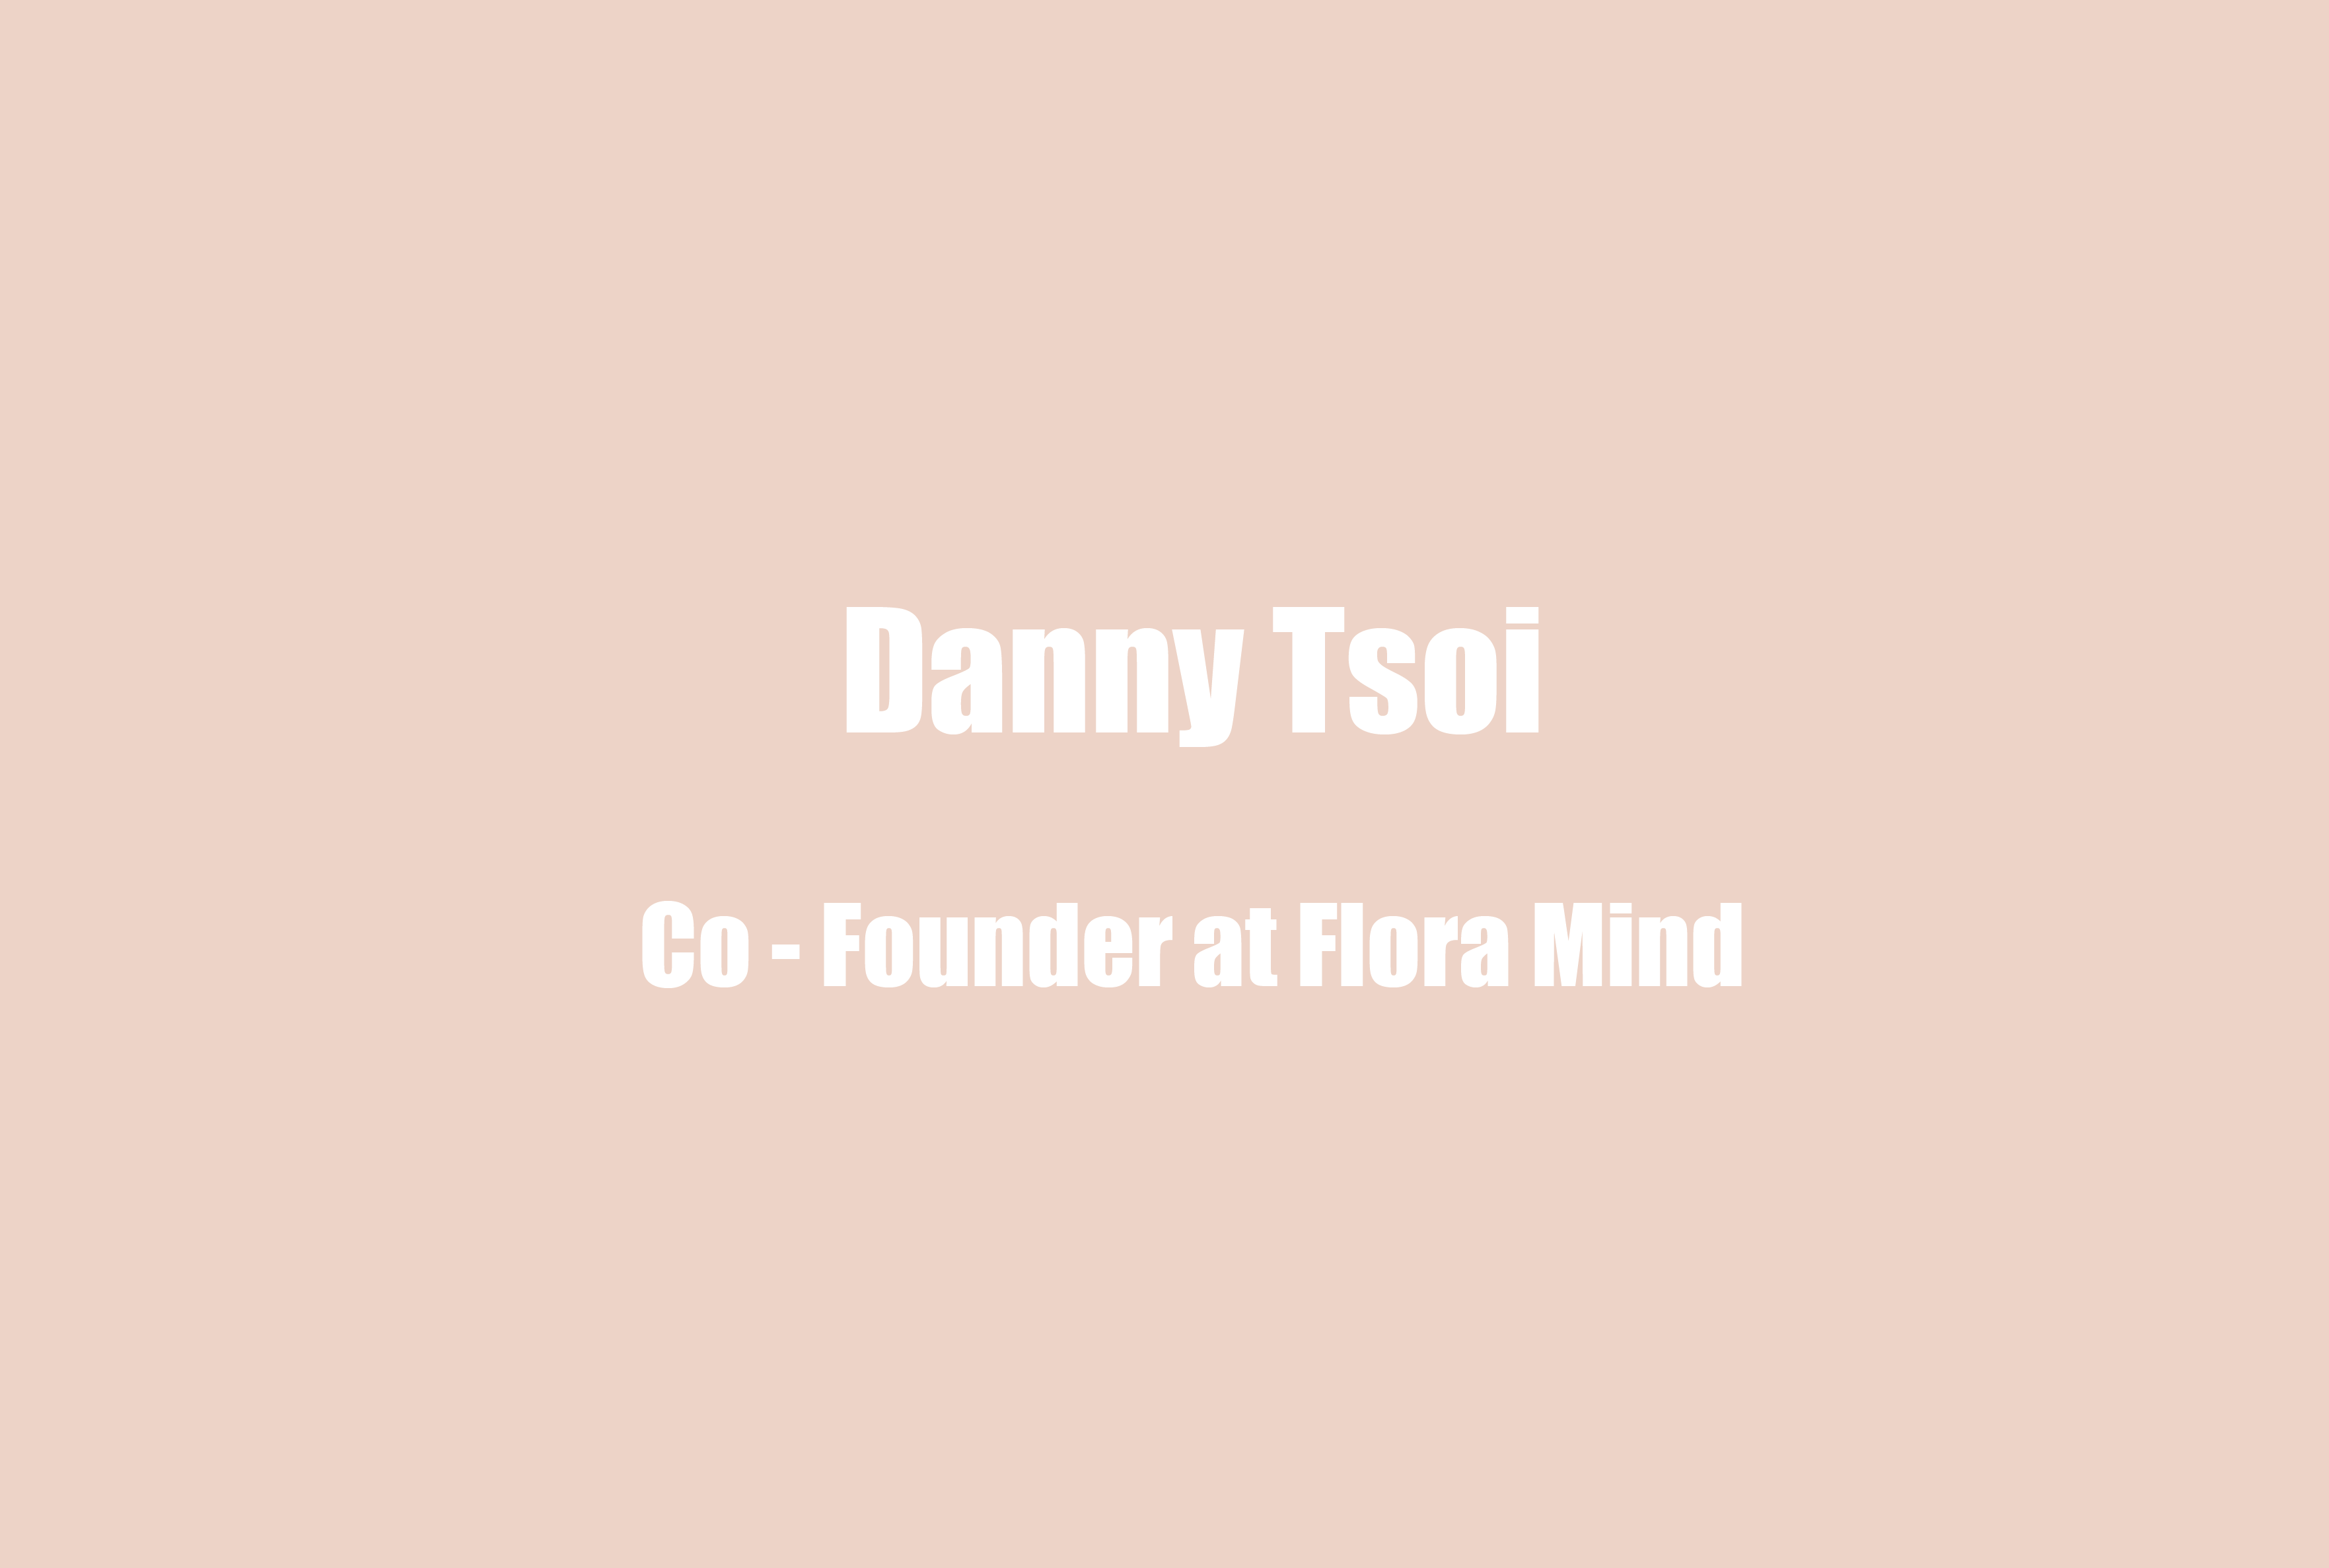 FloraMind Co-Founder Danny Tsoi on Teenage and Children Mental Health Support and Inspiration from the Hip-Hop Education Movement